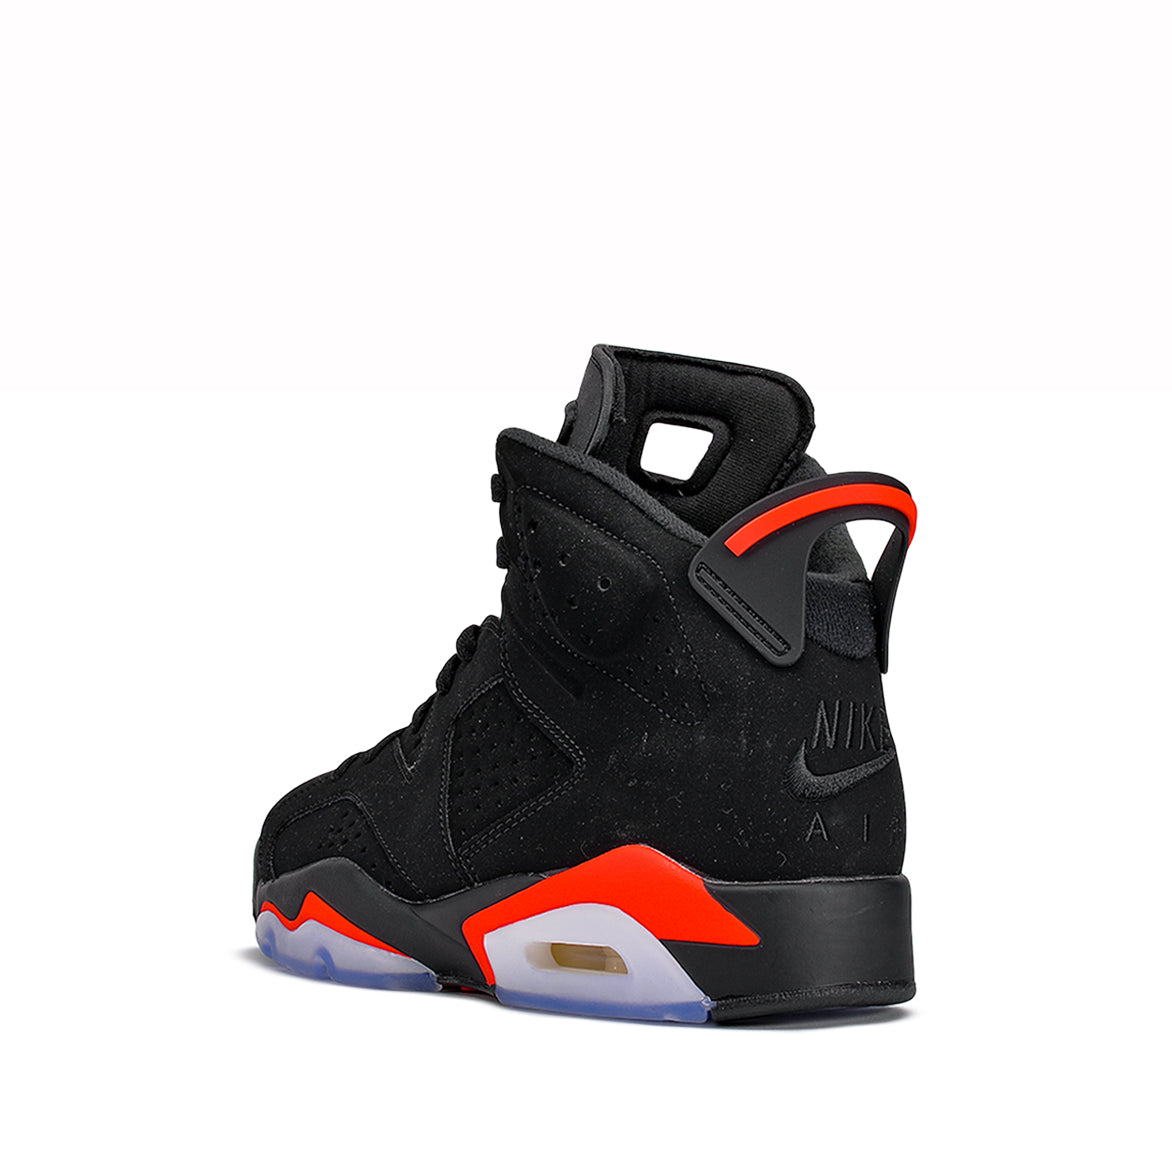 "AIR JORDAN 6 RETRO (GS) ""INFRARED"""